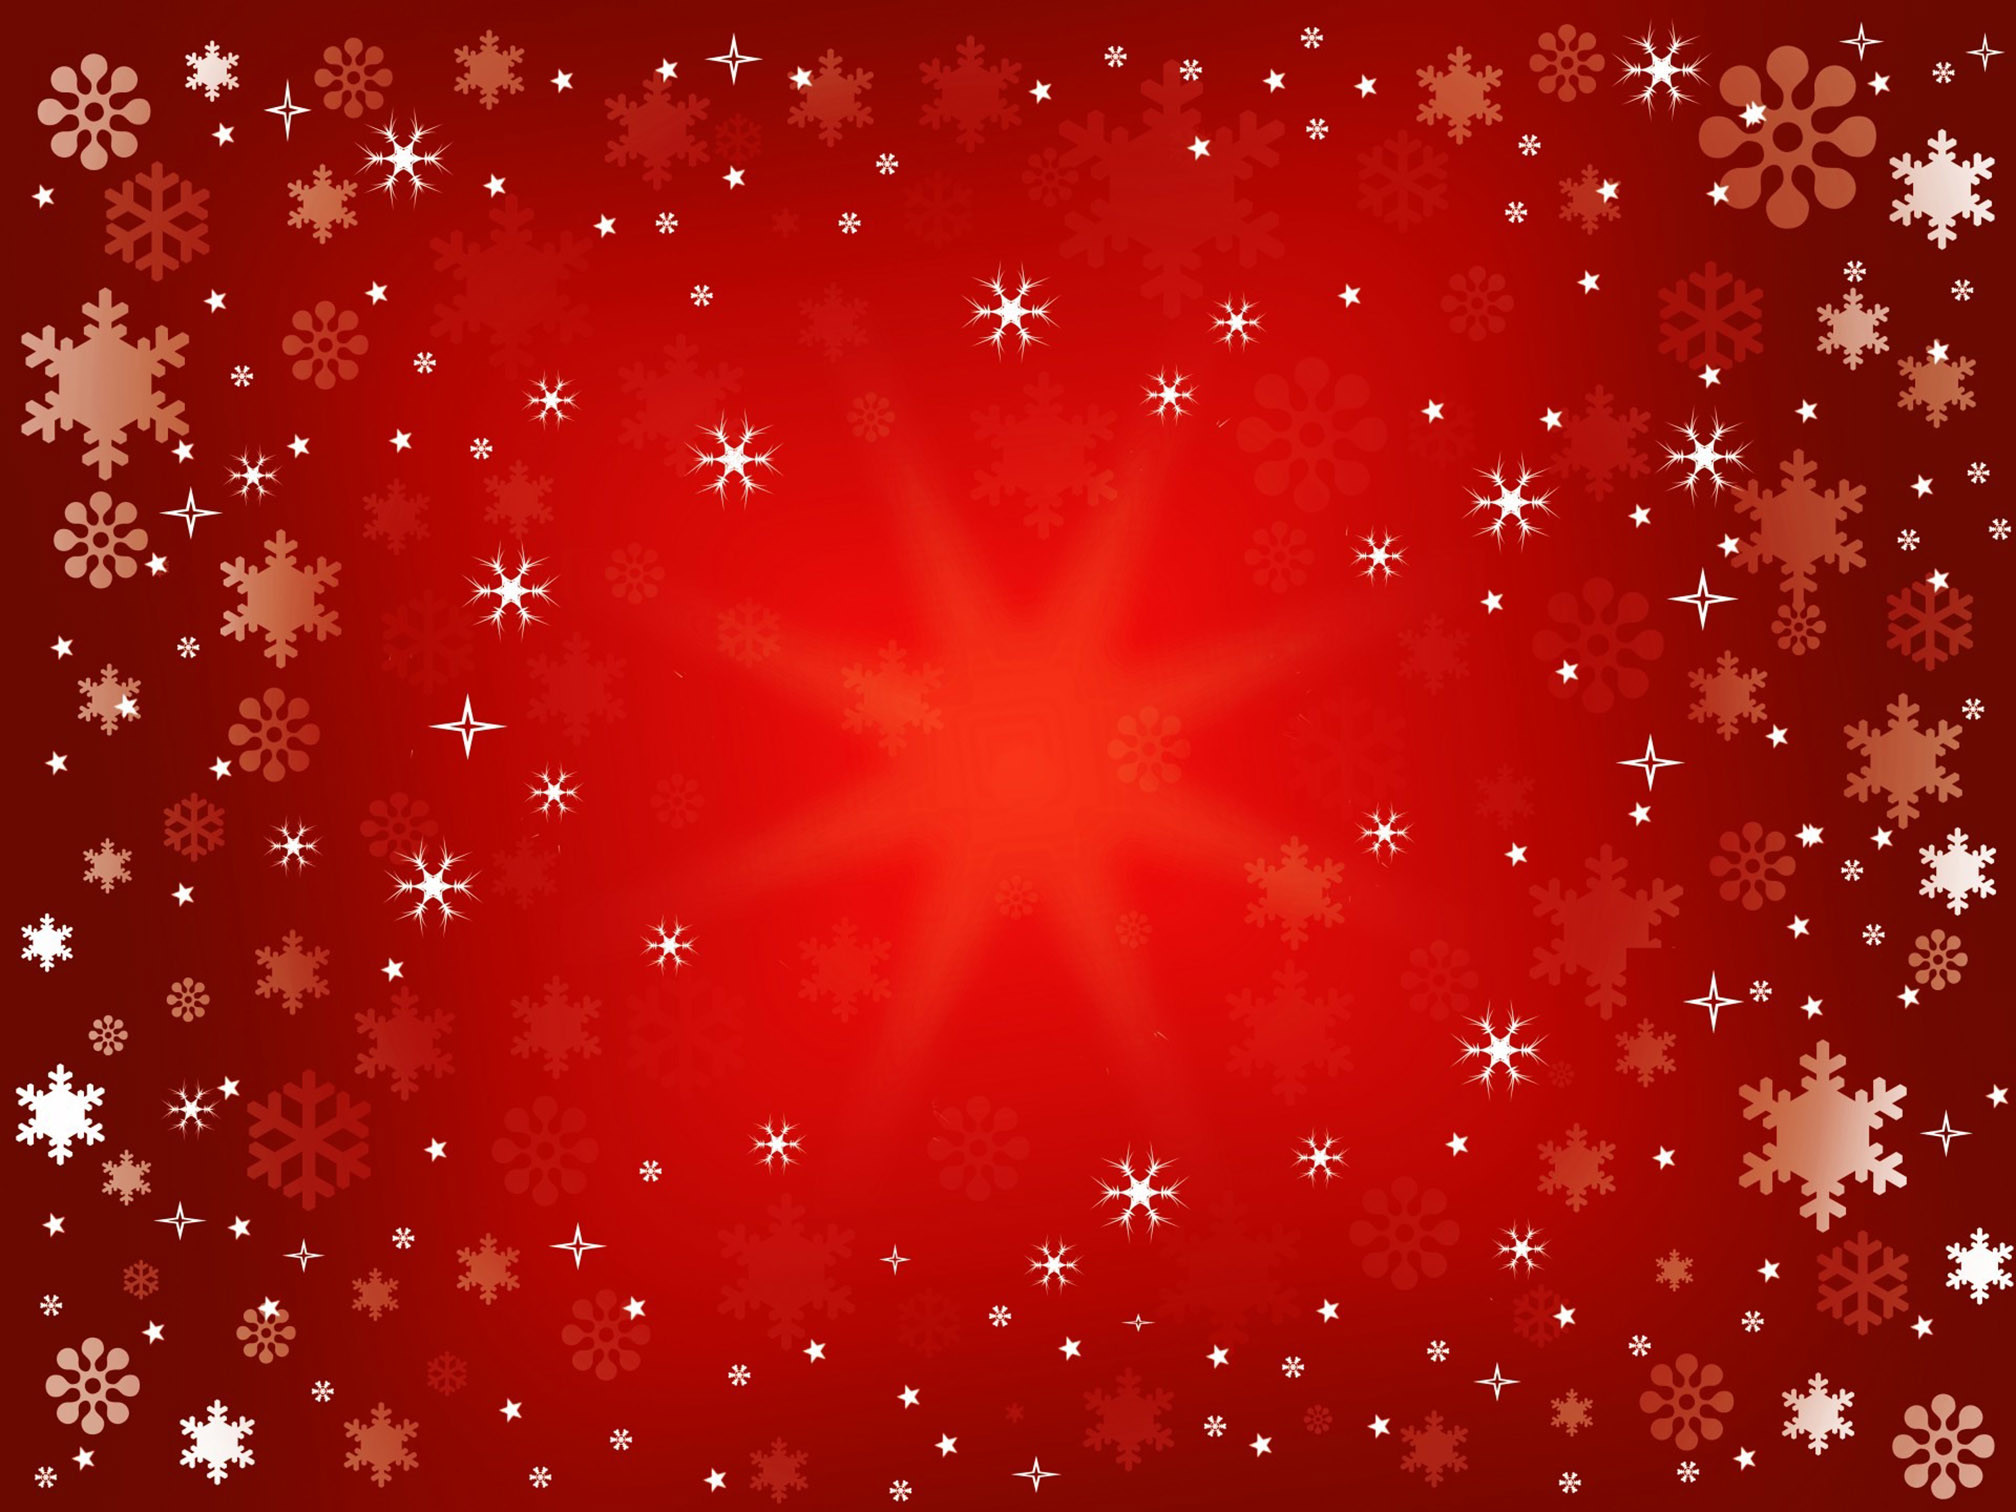 Wallpaper Background Gallery: Xmas Background Images ·①